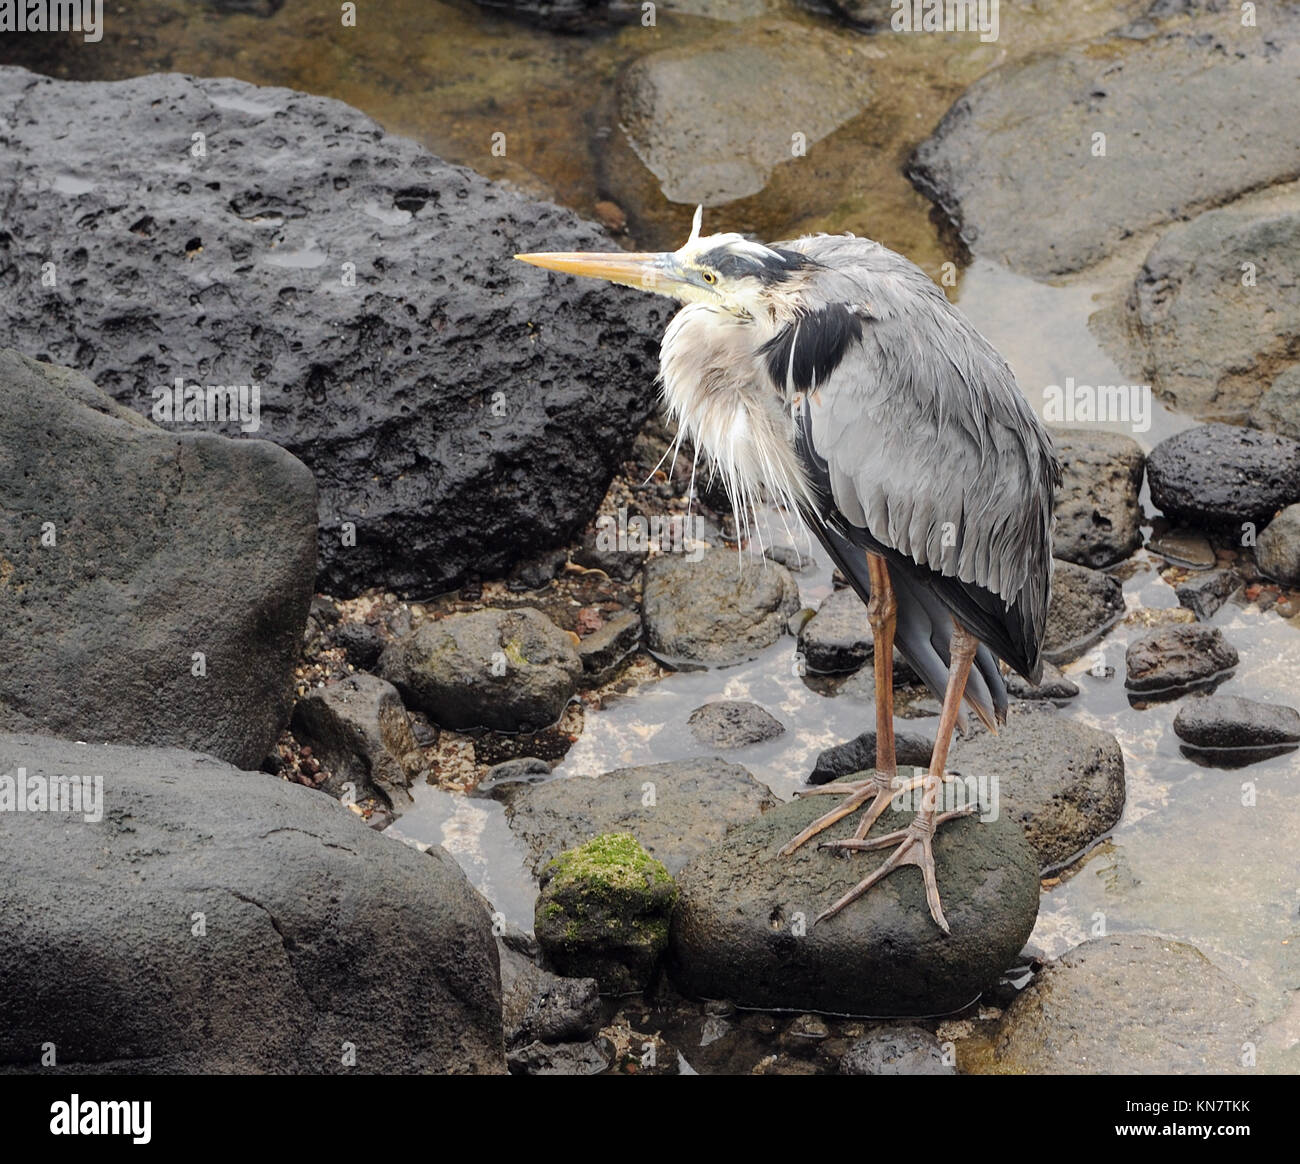 A dishevelled great blue heron (Ardea herodias)  sits out a rain shower. Puerto Baquerizo Moreno, San Cristobal, - Stock Image